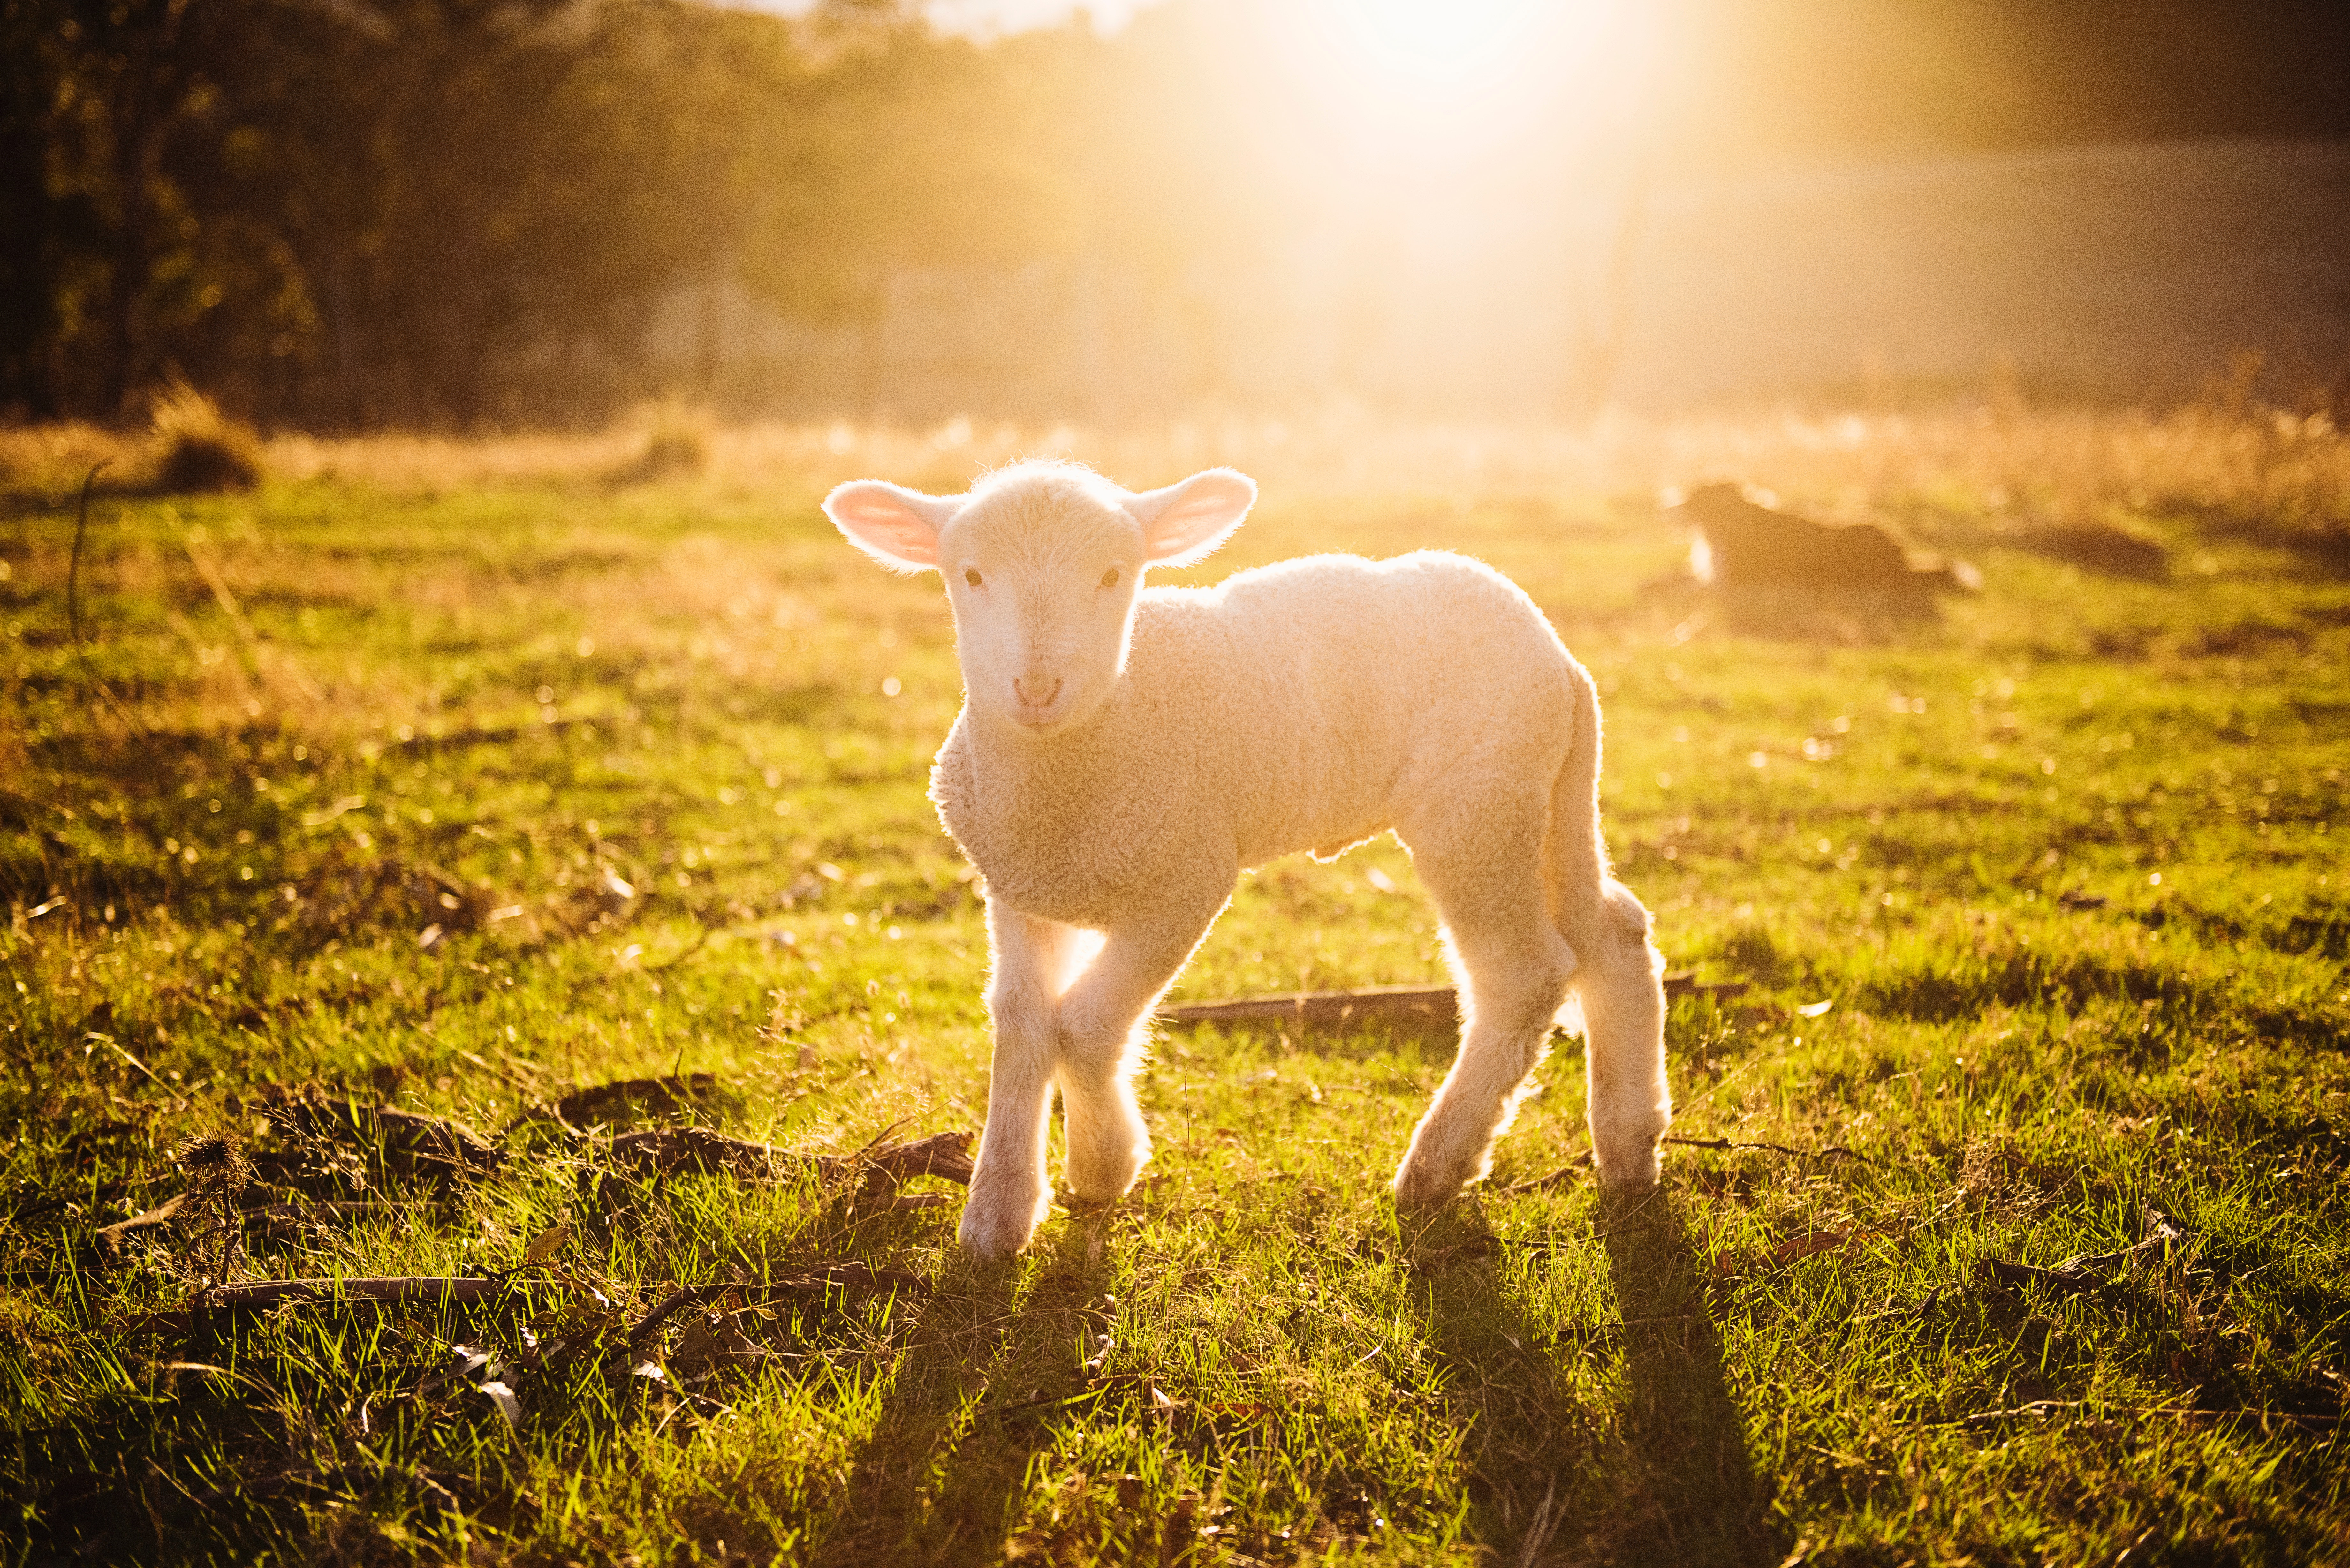 Shallow focus photography of white sheep on green grass